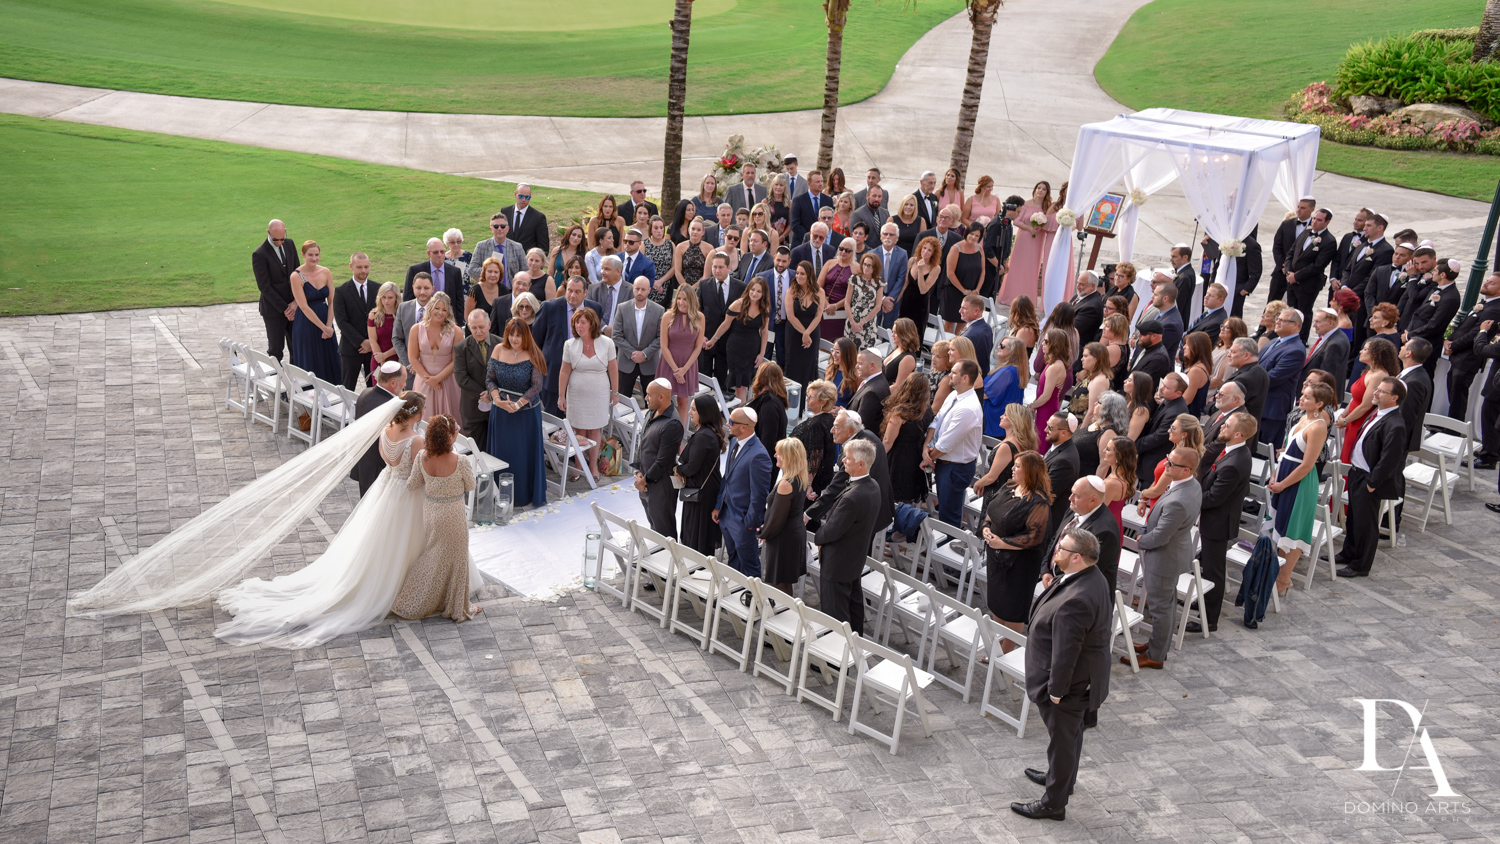 Romantic Outdoors Wedding at Woodfield Country Club in Boca Raton, Florida by Domino Arts Photography